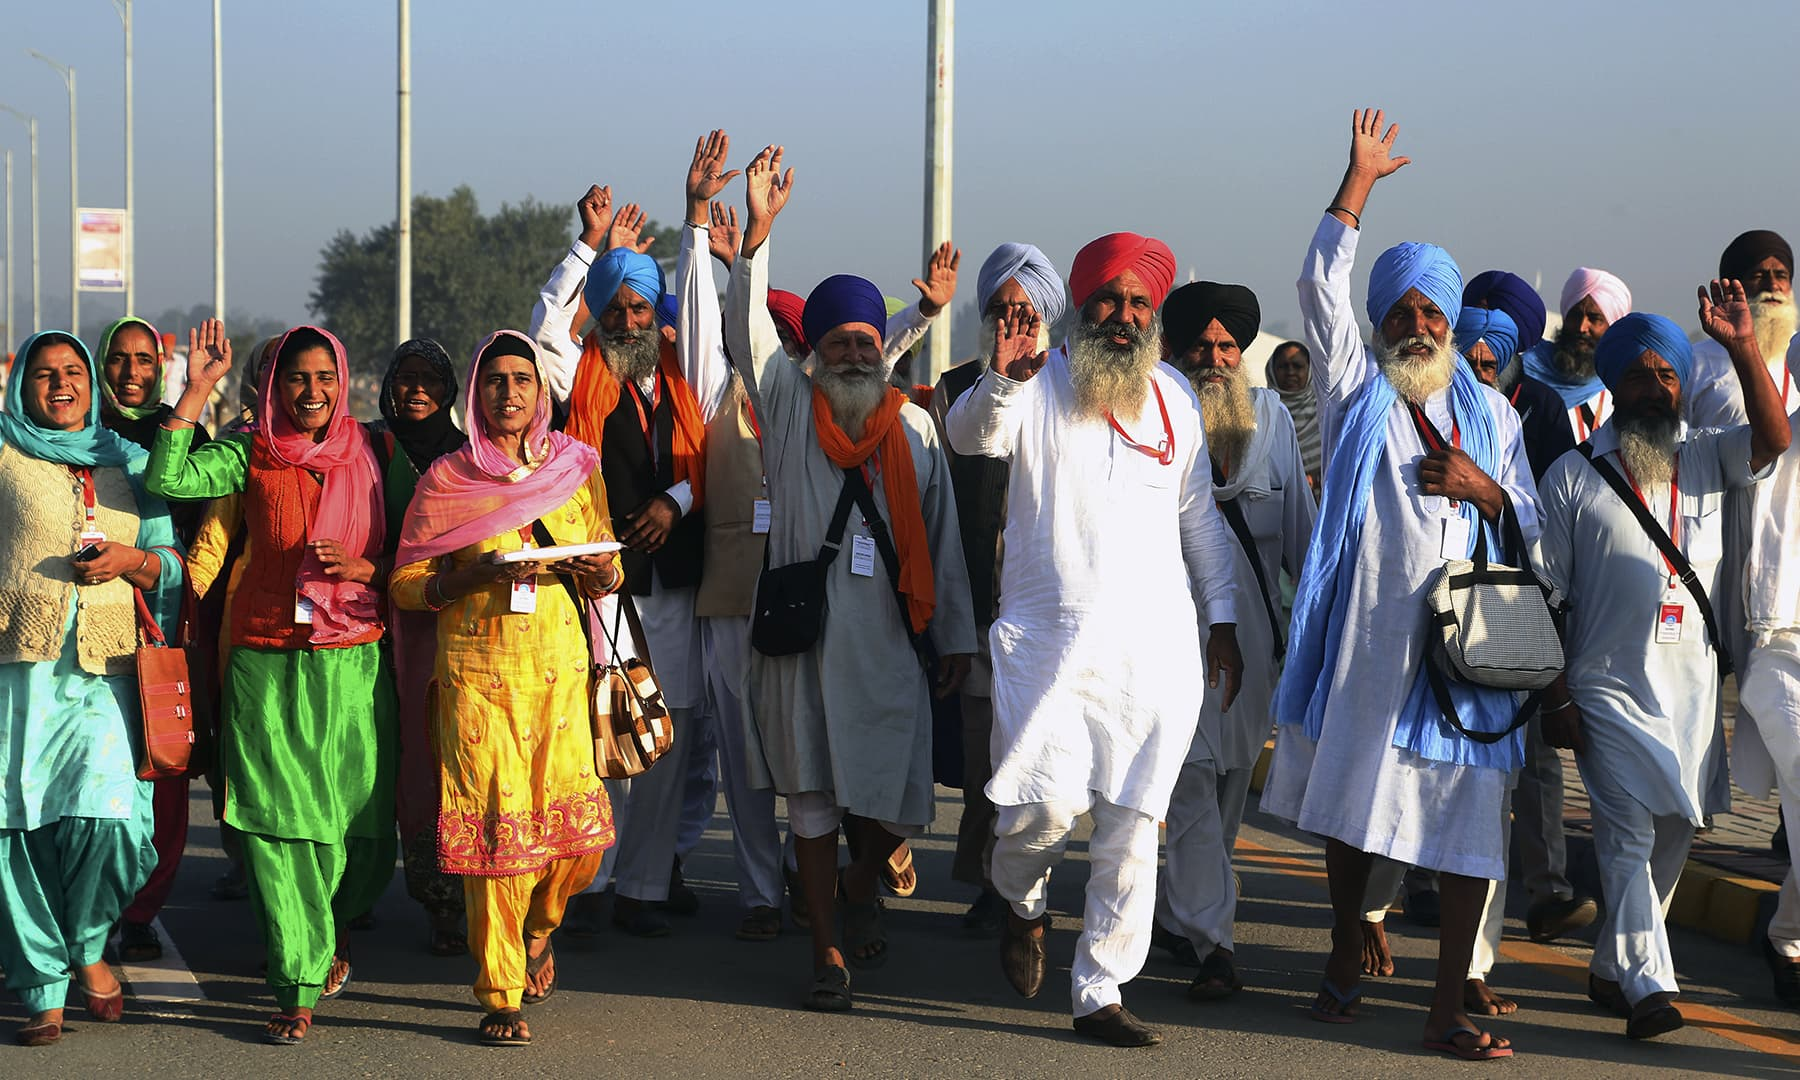 Sikh pilgrims arrive to visit the shrine of their spiritual leader Guru Nanak Dev, at Gurdwara Darbar Sahib in Kartarpur, Pakistan, on Saturday. — AP